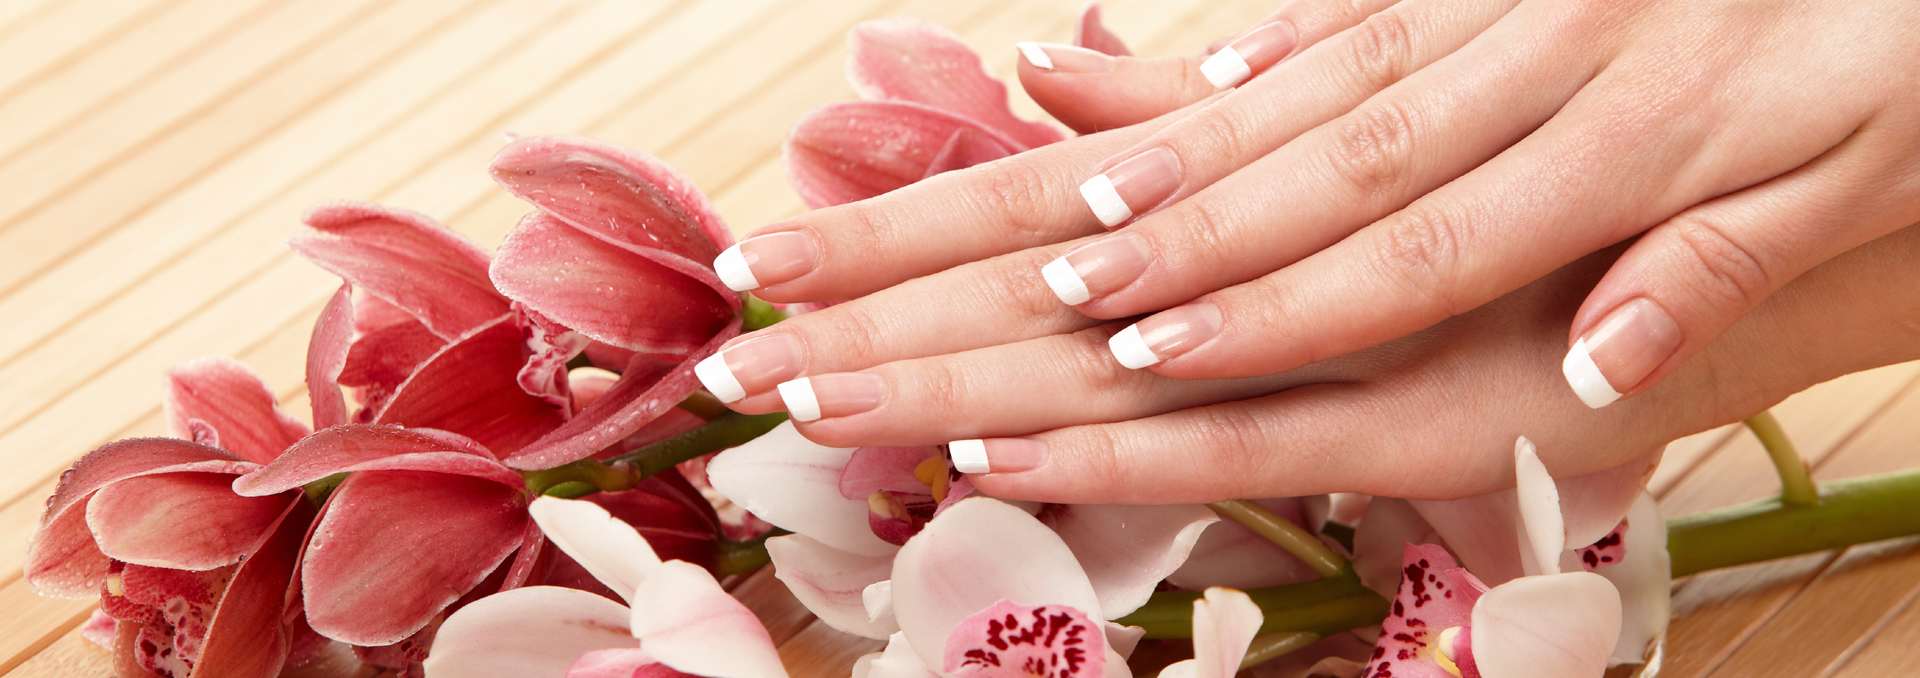 C D Nails & Spa - Nail salon in Augusta, ME 04330